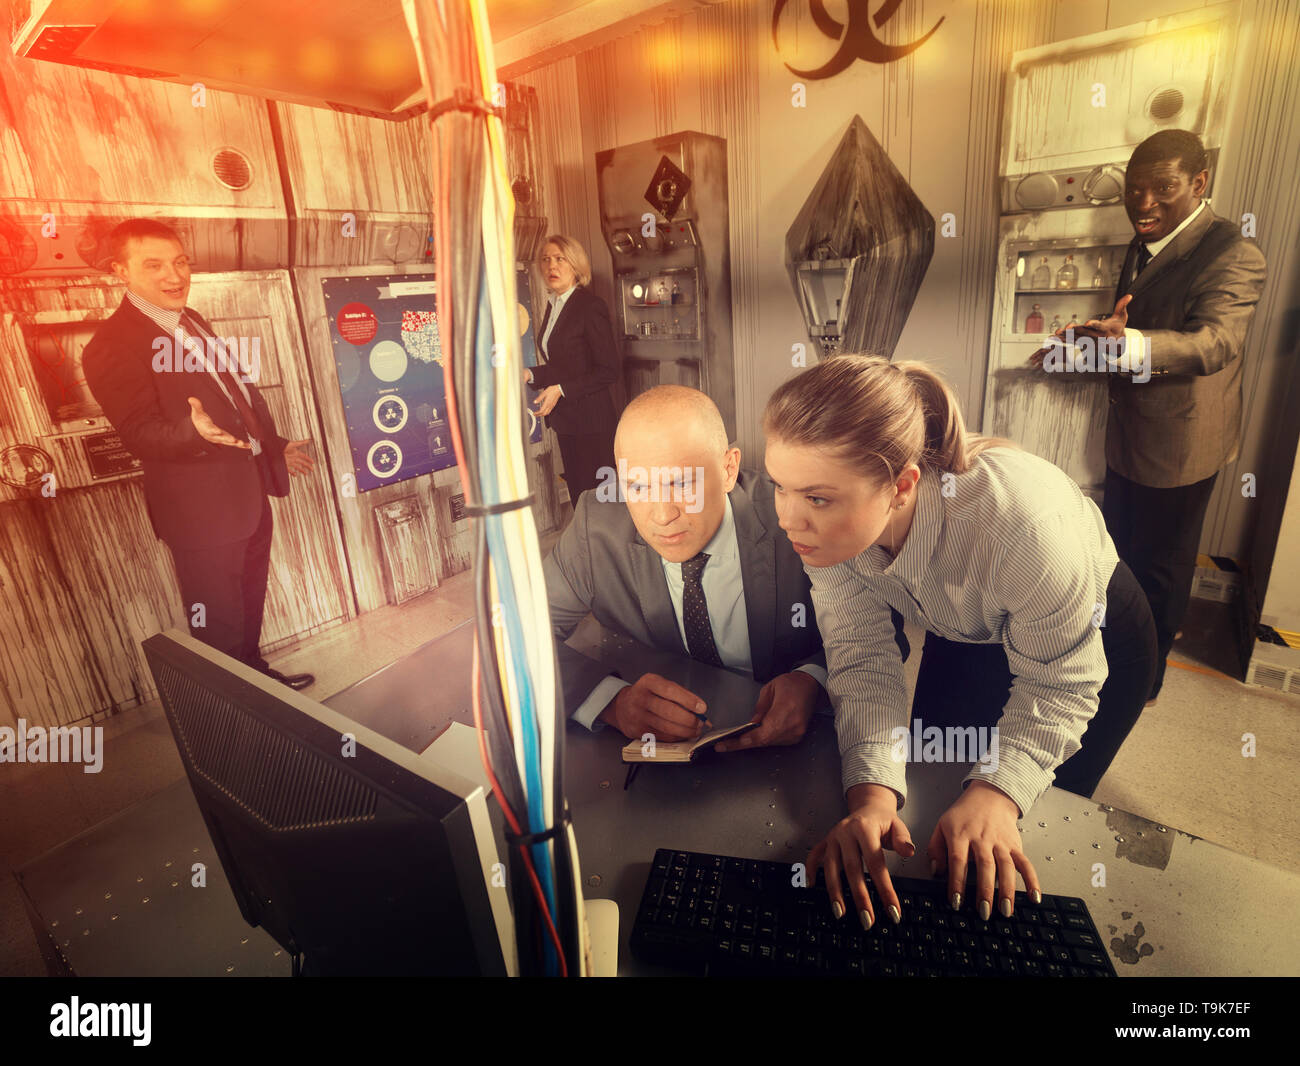 Toned image of businesspeople trying to get out of escape room stylized under laboratory. Concept of finding business solutions - Stock Image